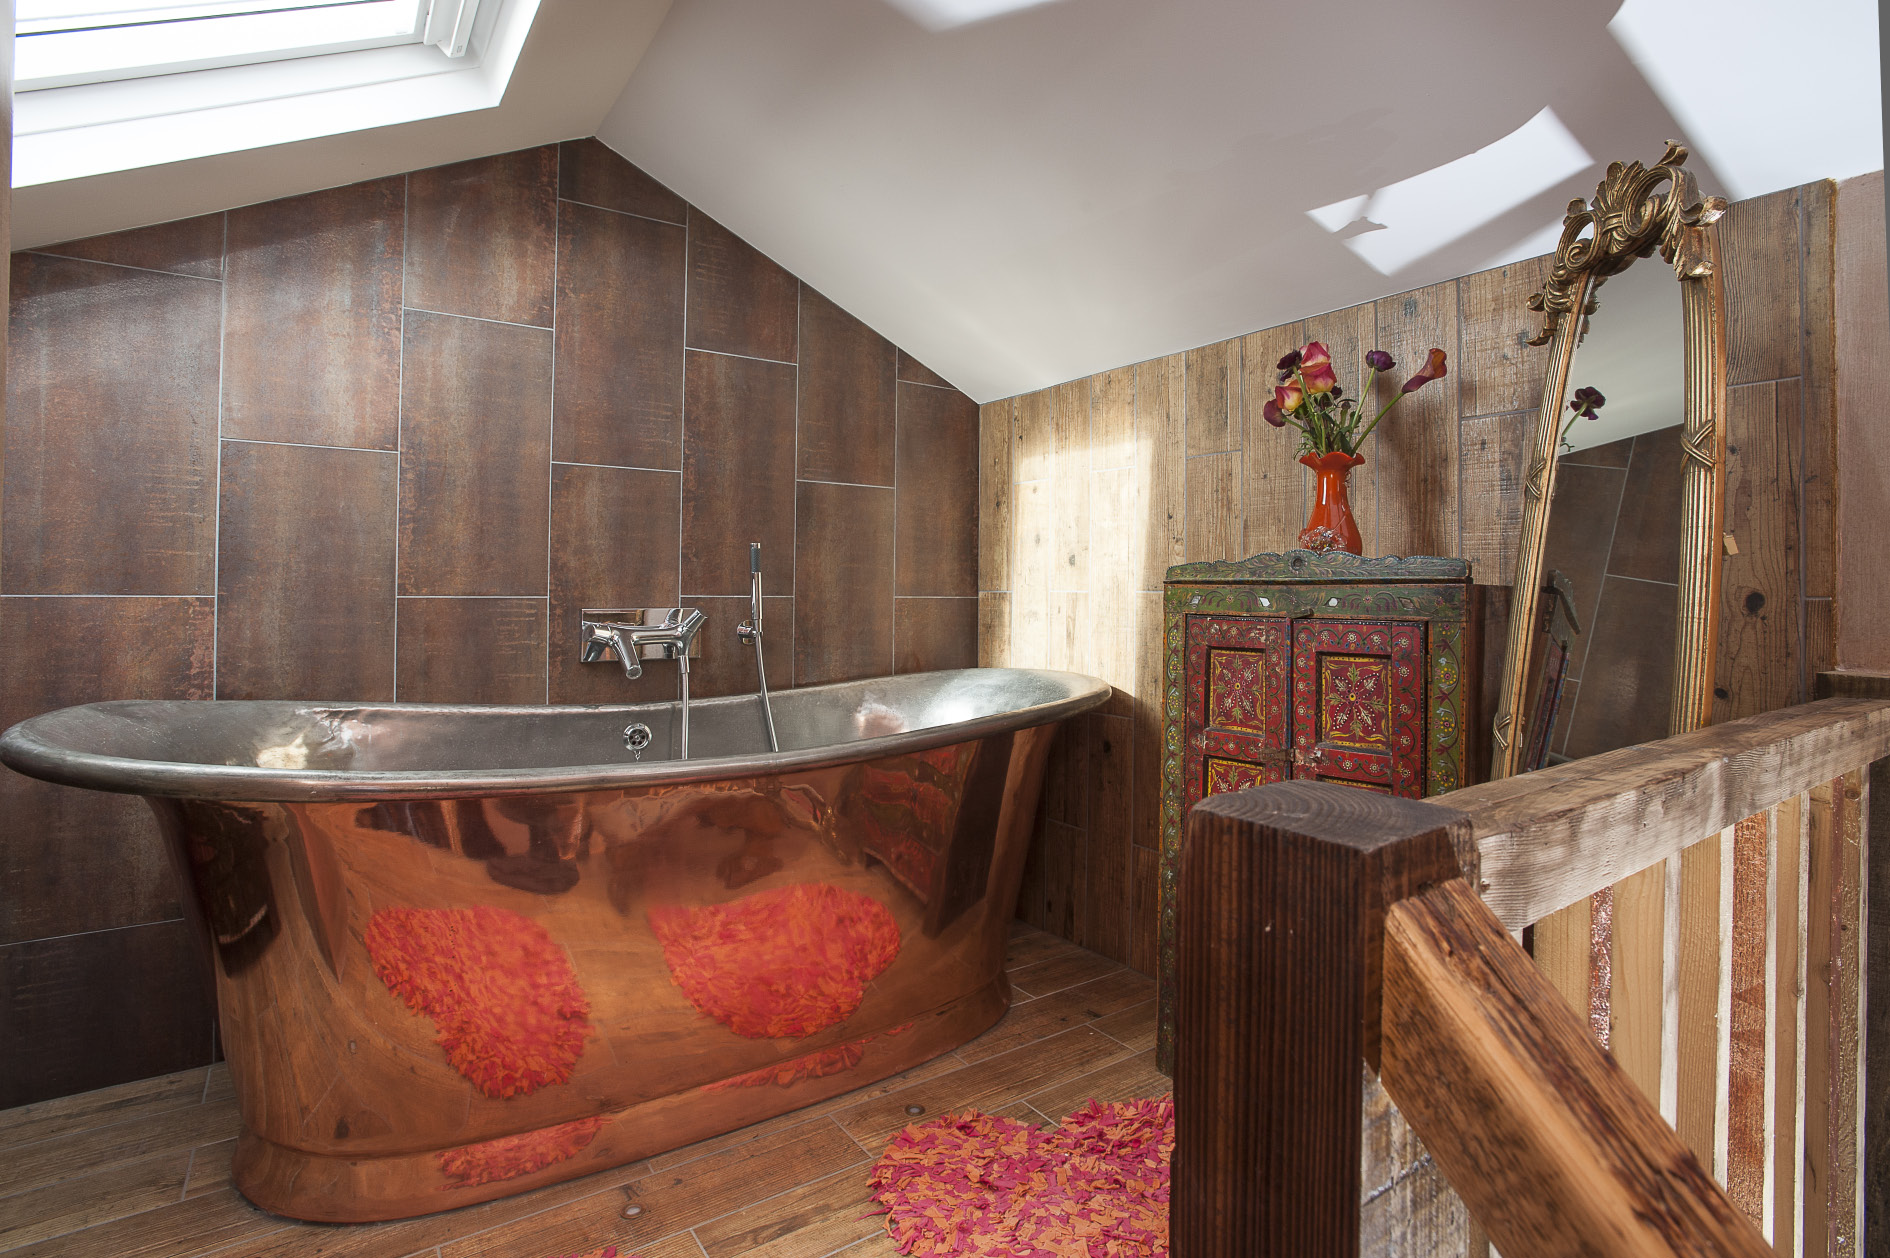 Nadene's magnificent William Holland copper bath